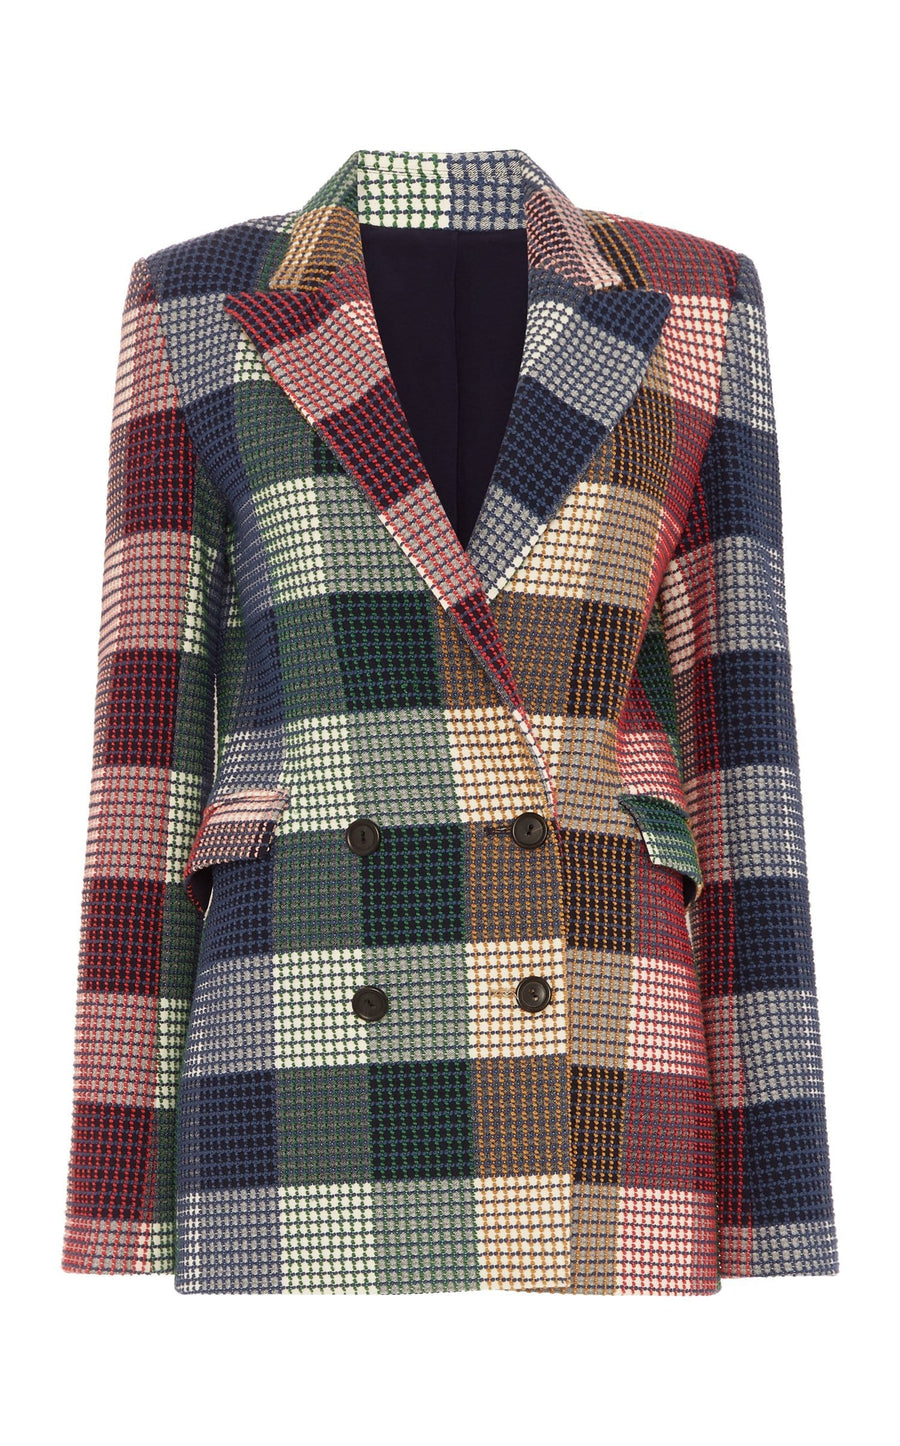 Harleston Jacket